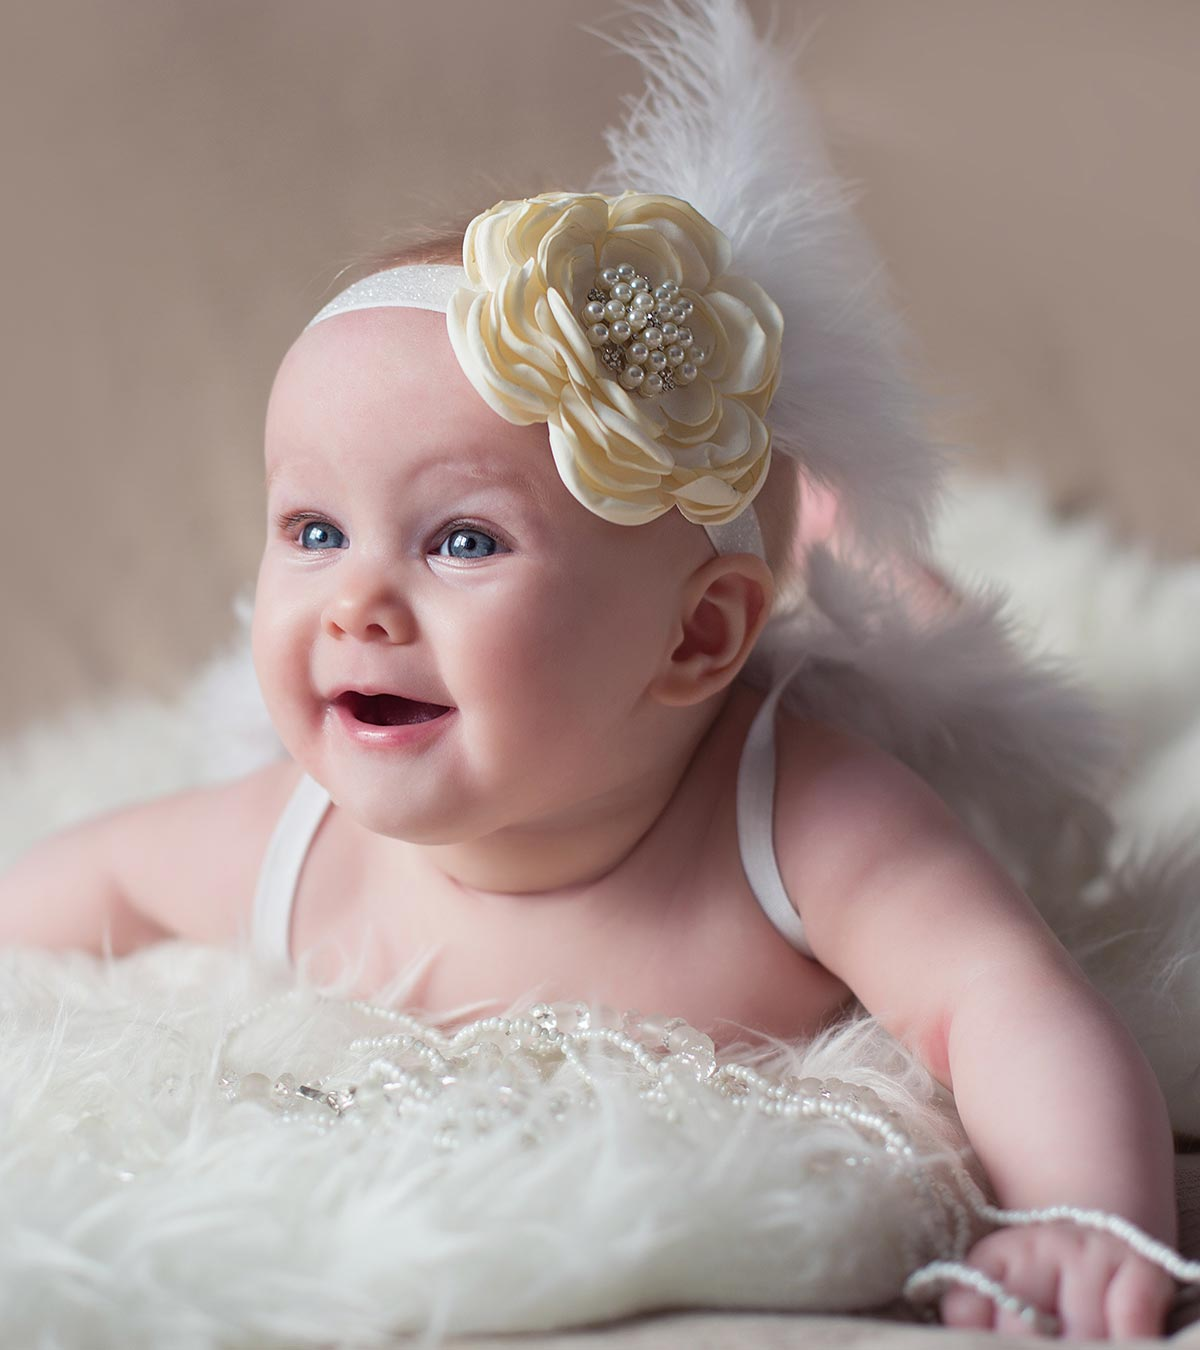 20 Most Beautiful Princess Names For Your Baby Girl